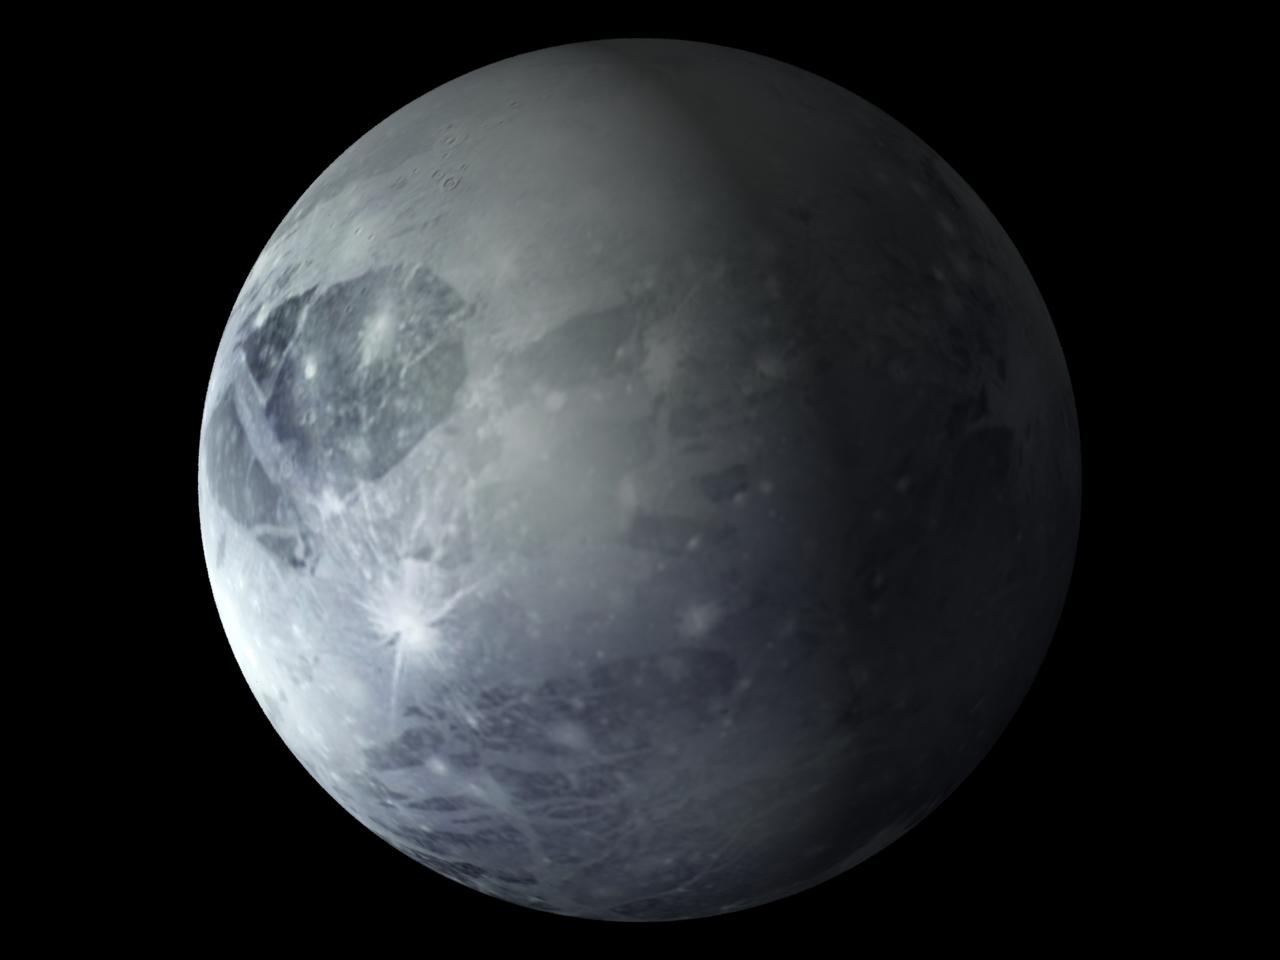 Unknown Facts about our Solar System and Planets: Pluto